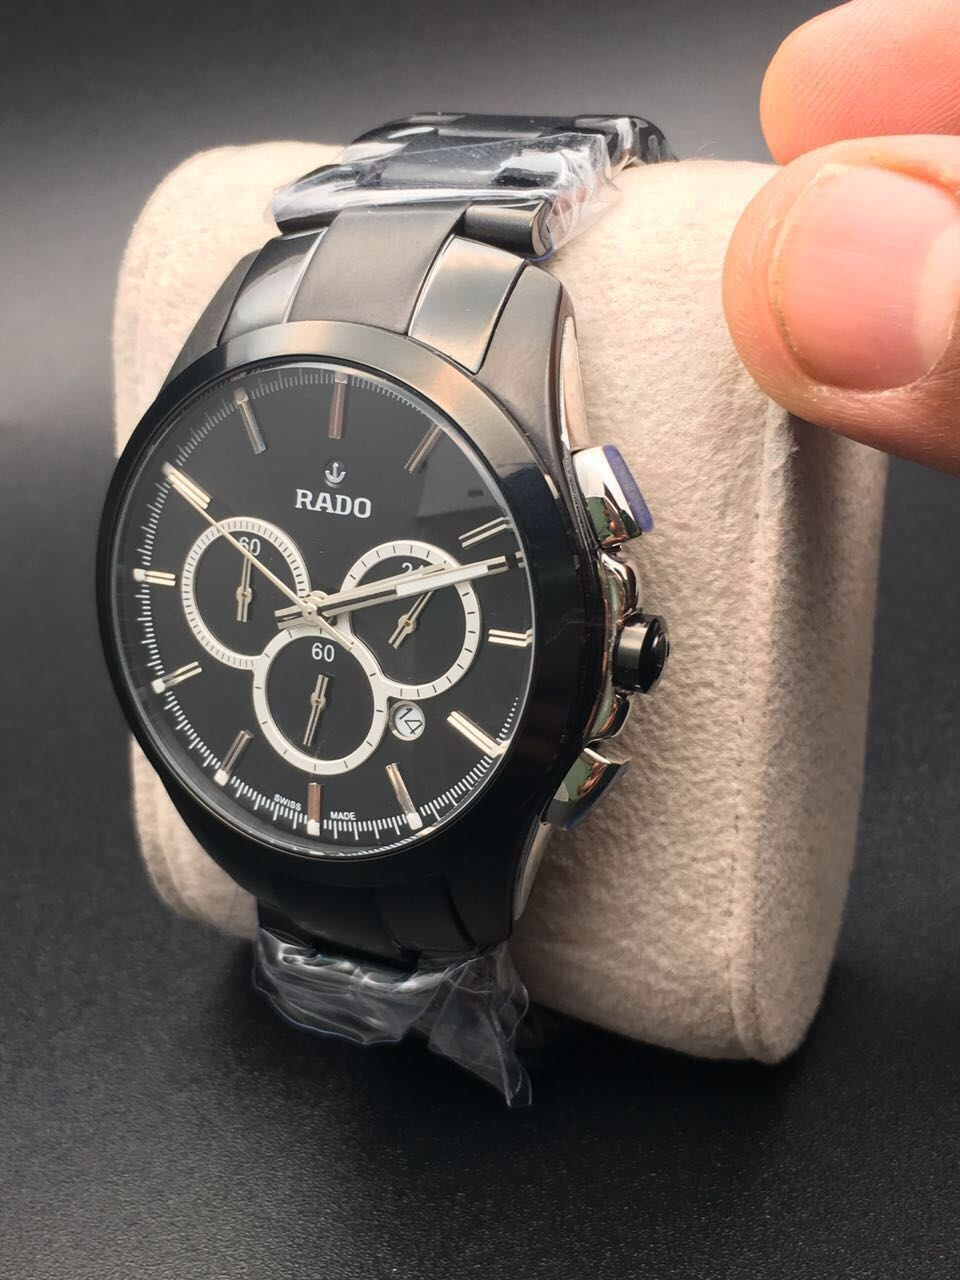 ⛔RADO HRITIK WATCHES FOR MANS ⛔BEST QUALITY WATCH ⛔ALL CHRONOGRAPHS WORKING⛔ ⛔STOP WATCH MACHINE WORKING⛔ ⛔DATE WORKING⛔ ⛔BRAND NAME ON BACK&LOCK&LOGO KEY⛔   ⛔₹₹@3400/- FREE SHIP ALL INDIA⛔  TO BUY SEND DM OR WATSAAP 9999142594   Chat with me on the #RoposoApp to buy this product! #roposo  #thebazaar #rado #radowatches #watchesformen #trendingonroposo #trendalert #2017trends  #roposochattobuy #fashion #shopping #shop #buy #seller #newarrival #onlineshopping #latesttrend #fashionpost  #fashionlove #fashionoftheday #fashionlook #fashionlover #trending #trendyfashion #onlineboutique #onlinestore #onlineshop